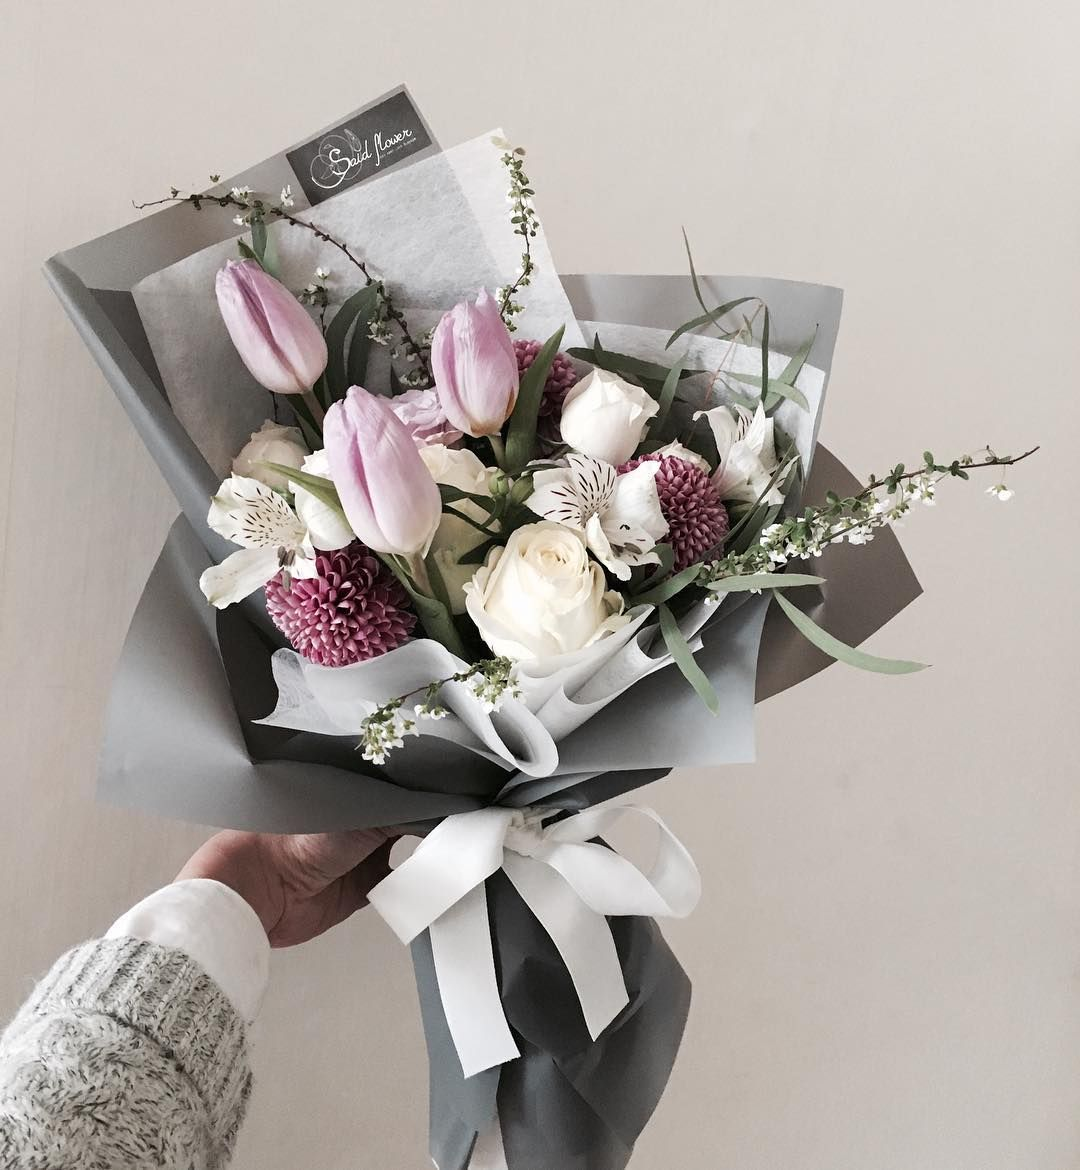 Pin By Alice Jane On Flowers Pinterest Flowers Bouquet And Floral